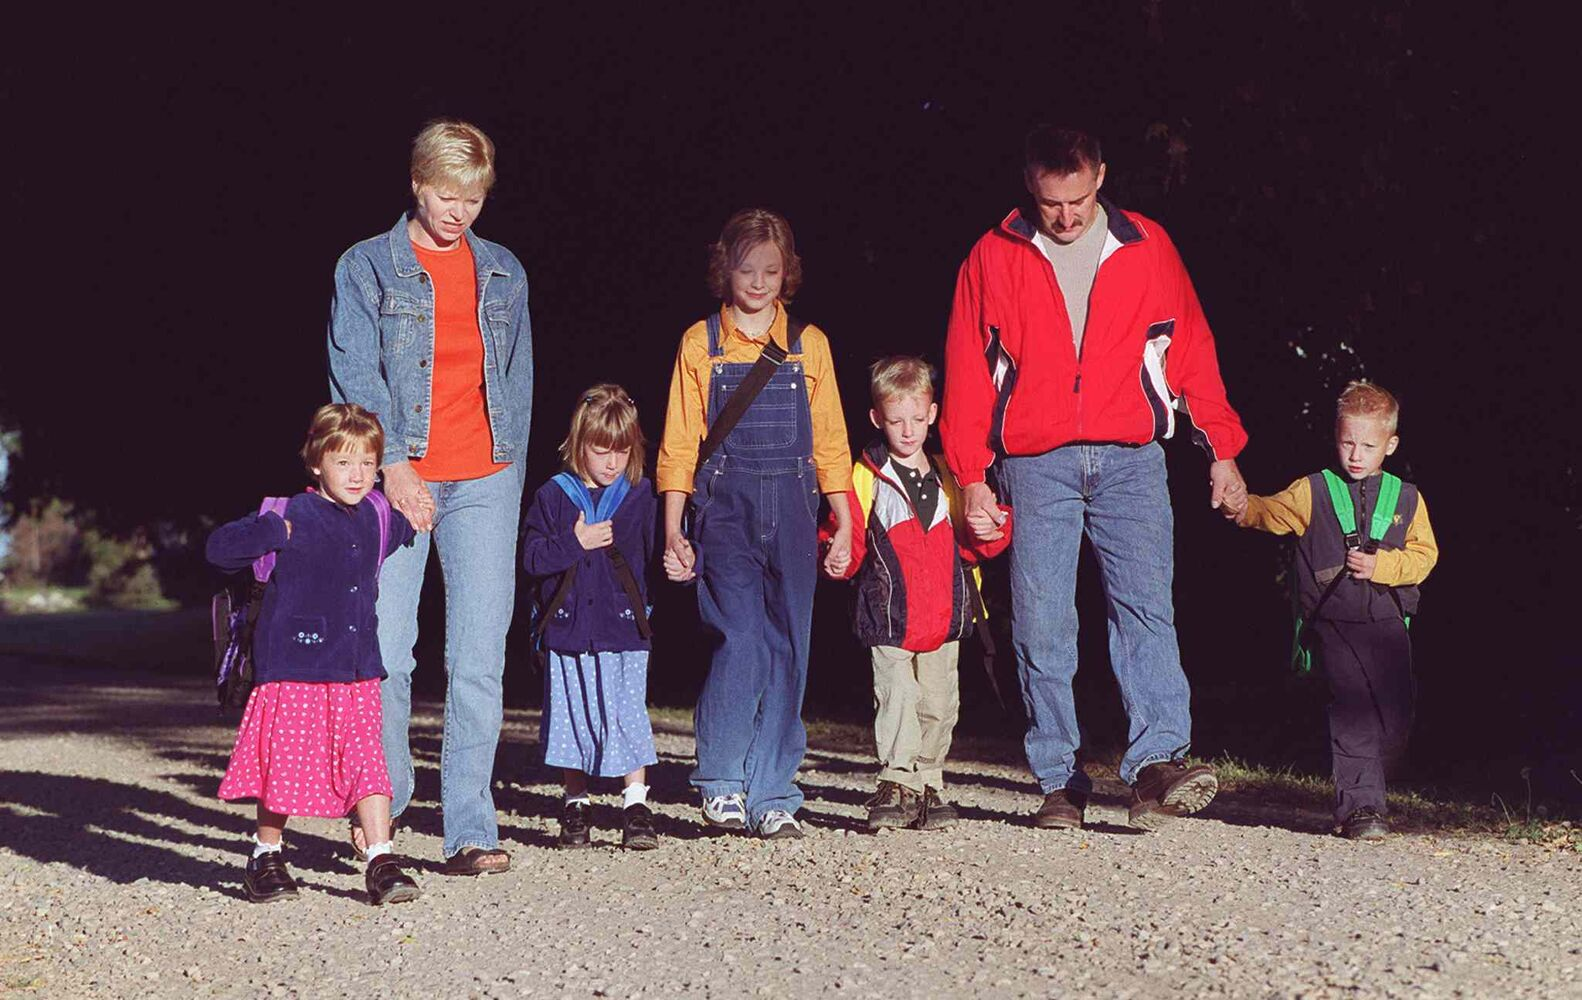 From left, Janelle, Mom Heather, Maryn, big sister Caitlyn, Greg, Dad Ed, and Myles Lavich walk up their road to meet the school bus for the quadruplets' first day of kindergarten.